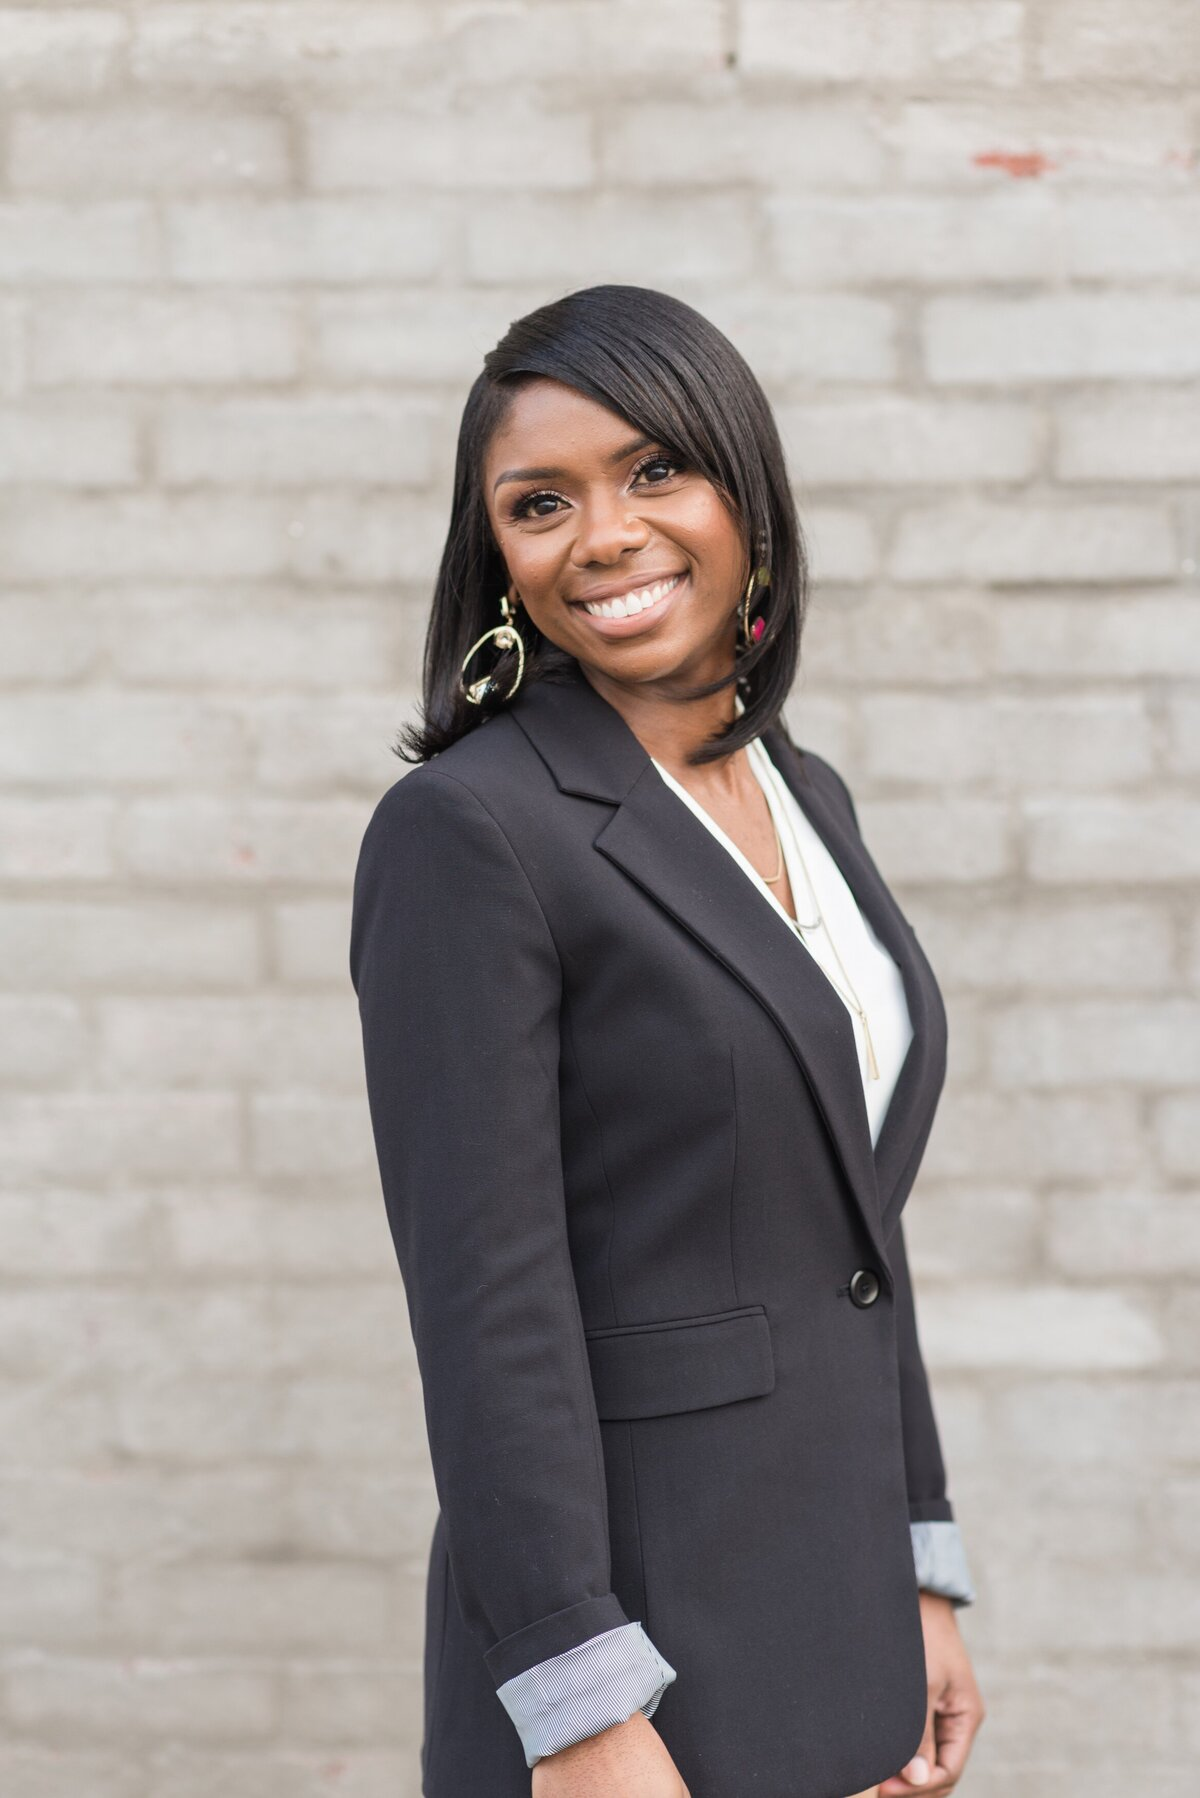 Headshot of a black bsuiness woman wearing a blazer in Nashville, TN